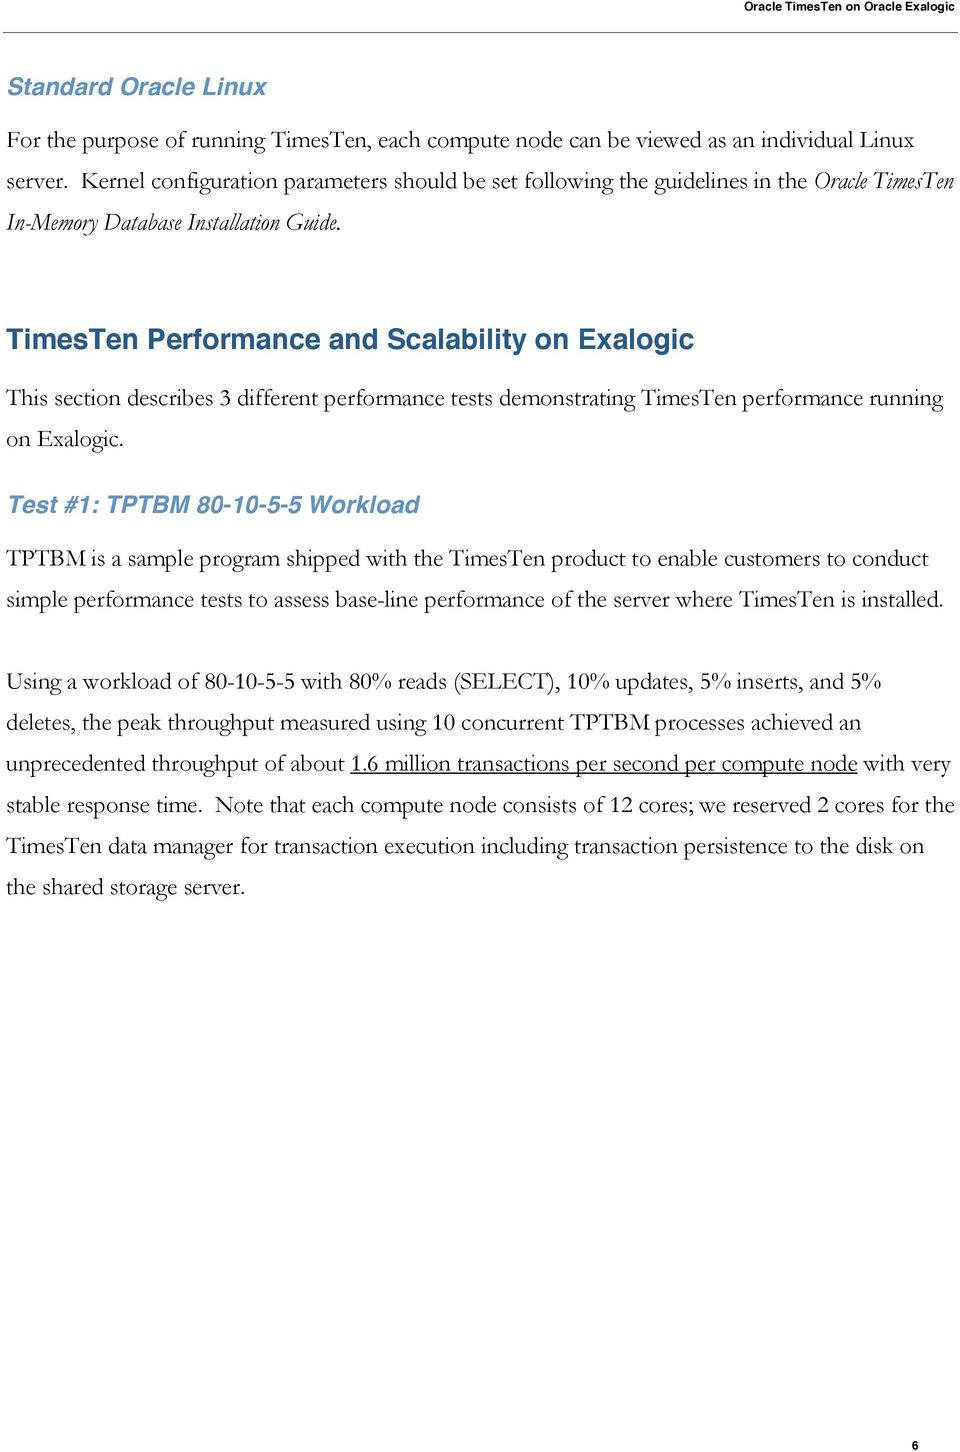 TimesTen Performance and Scalability on Exalogic This section describes 3 different performance tests demonstrating TimesTen performance running on Exalogic.